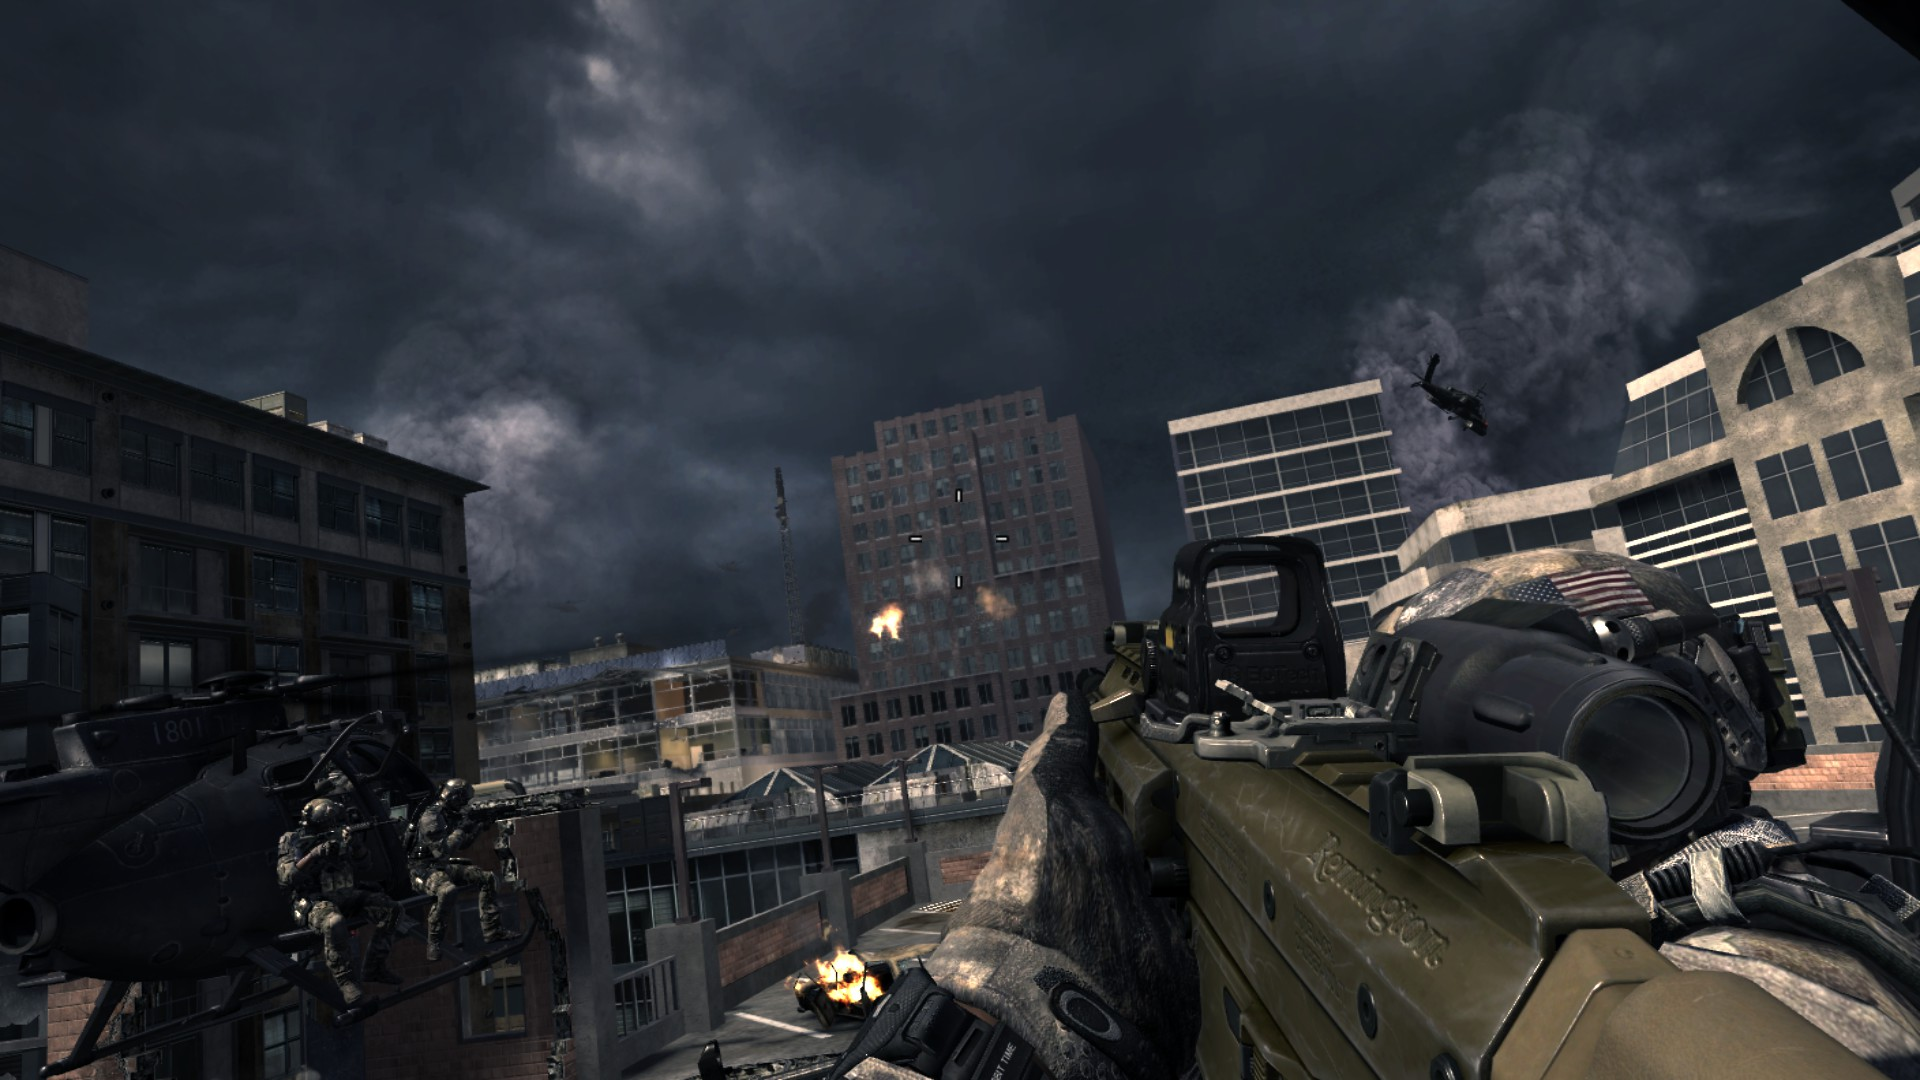 http://www.imfdb.org/images/2/2f/MW3-ACR-1.jpg